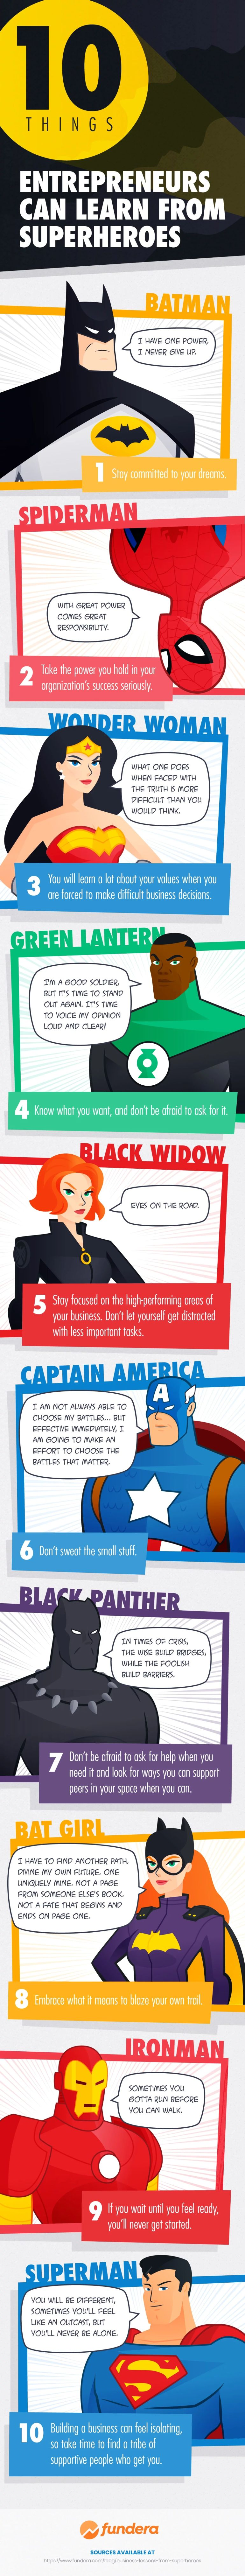 Superheroes-business lessons-infographic